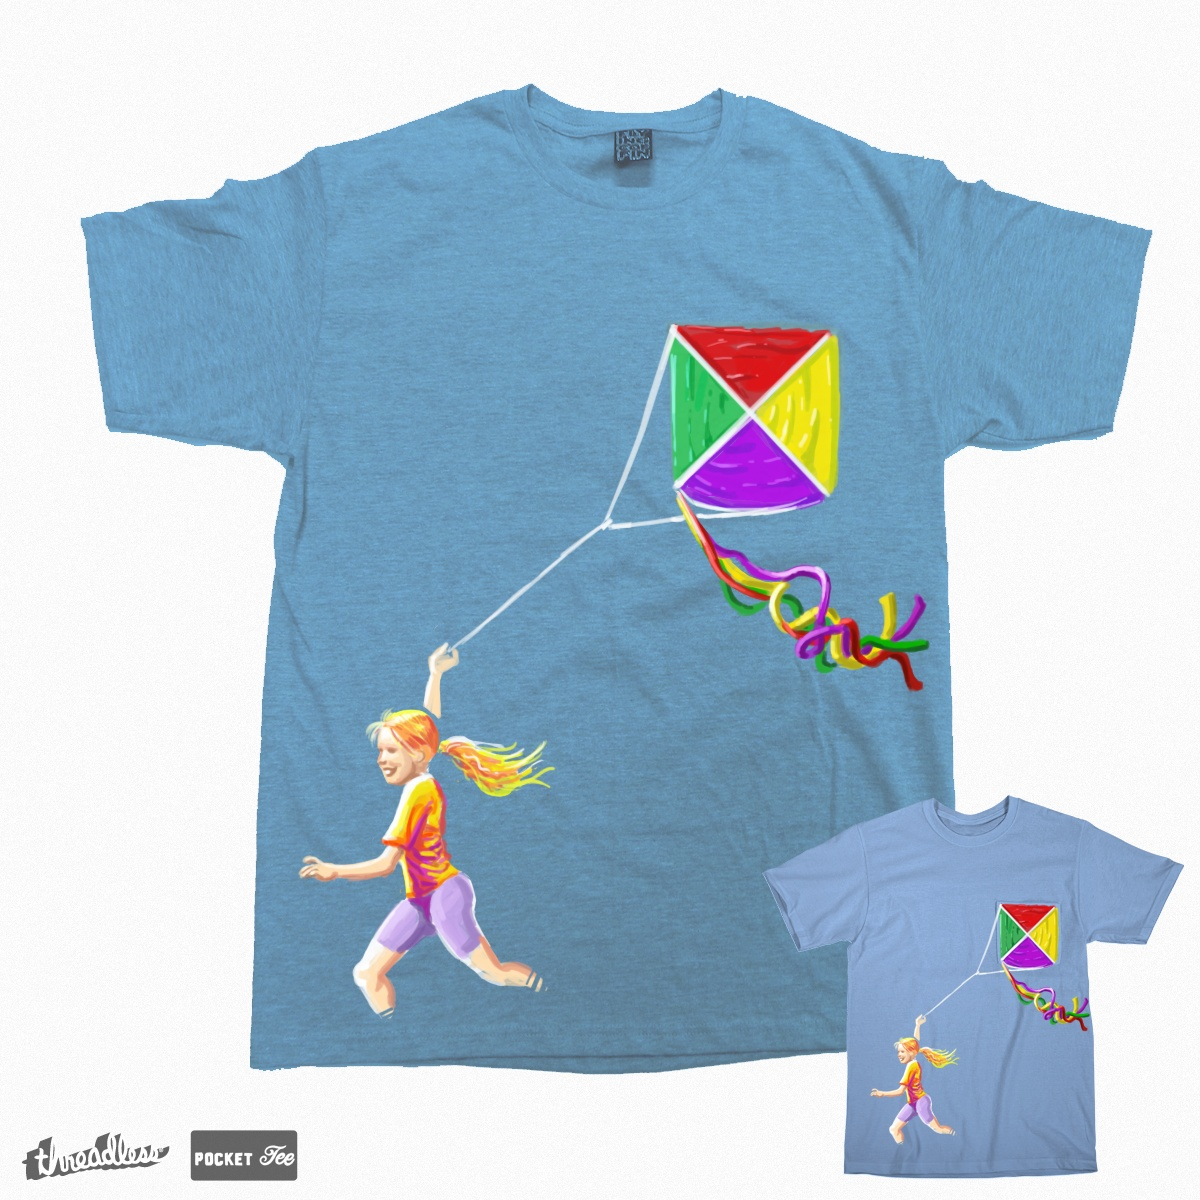 KITE POCKET, a cool t-shirt design